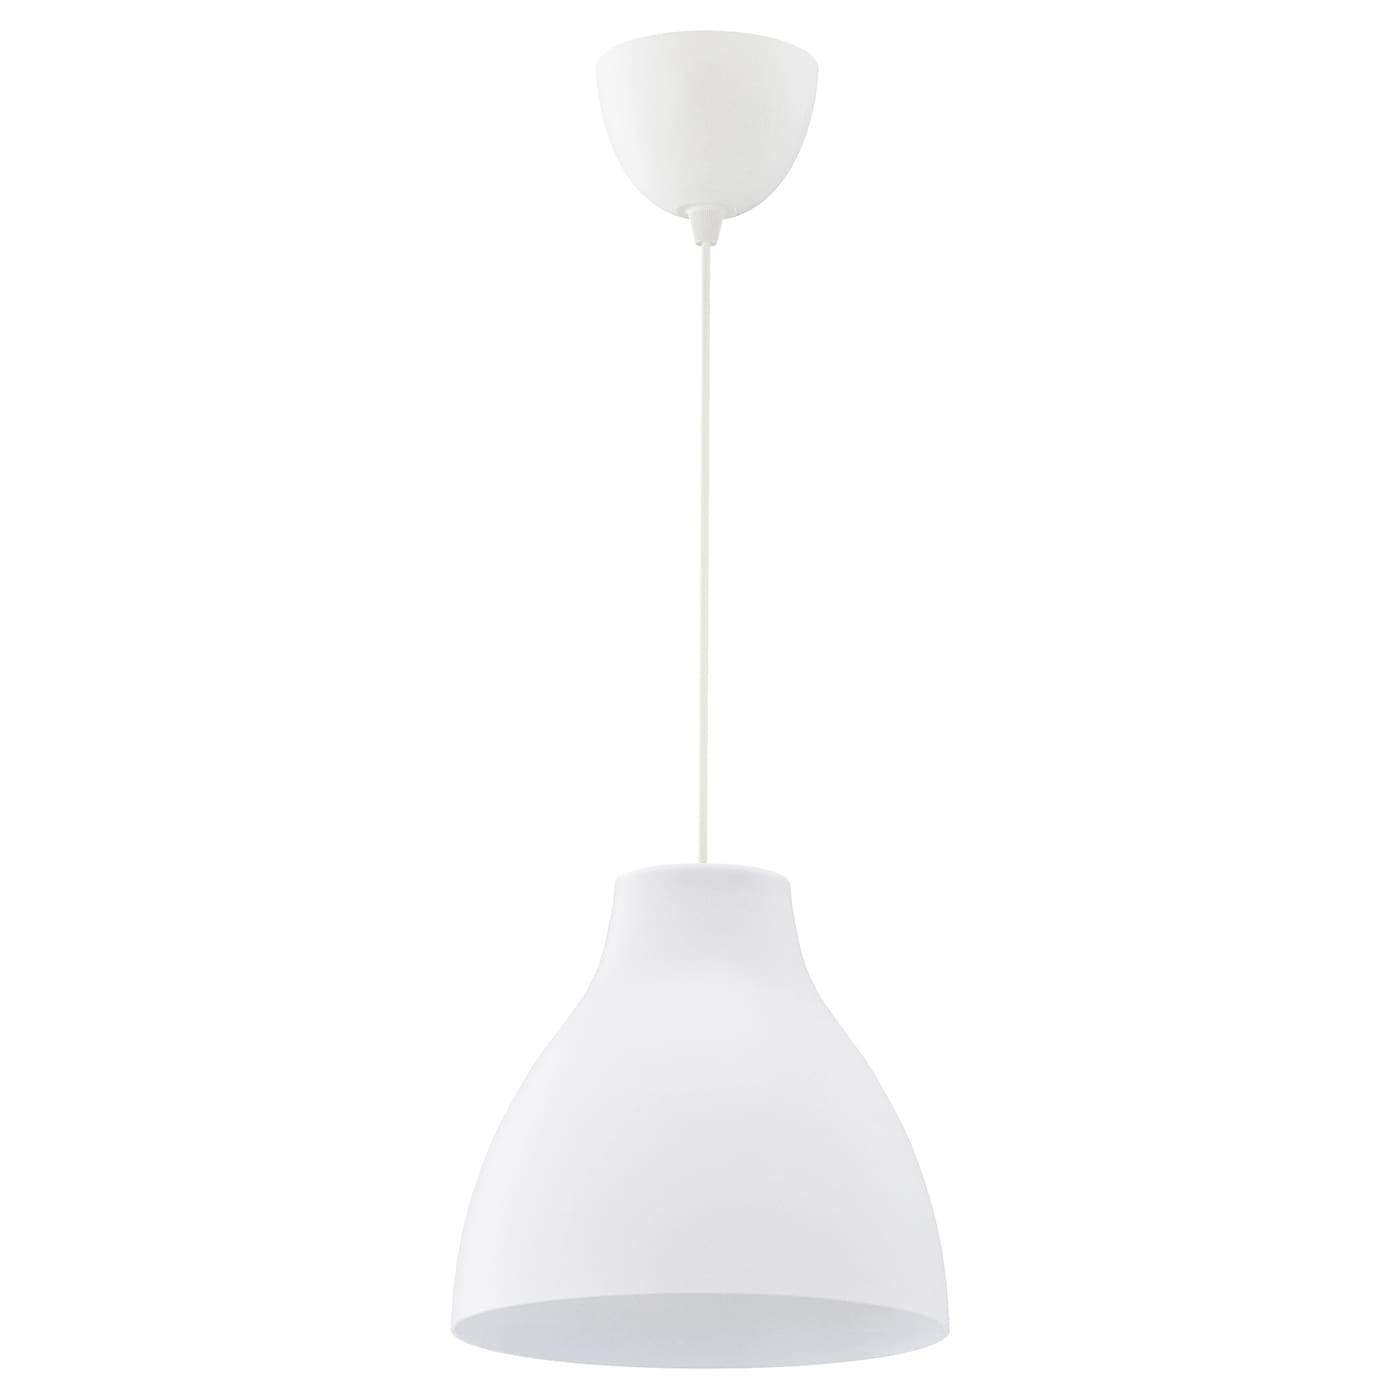 by lights multi alt jonathan image light w pendants category capri modern lighting adler pendant